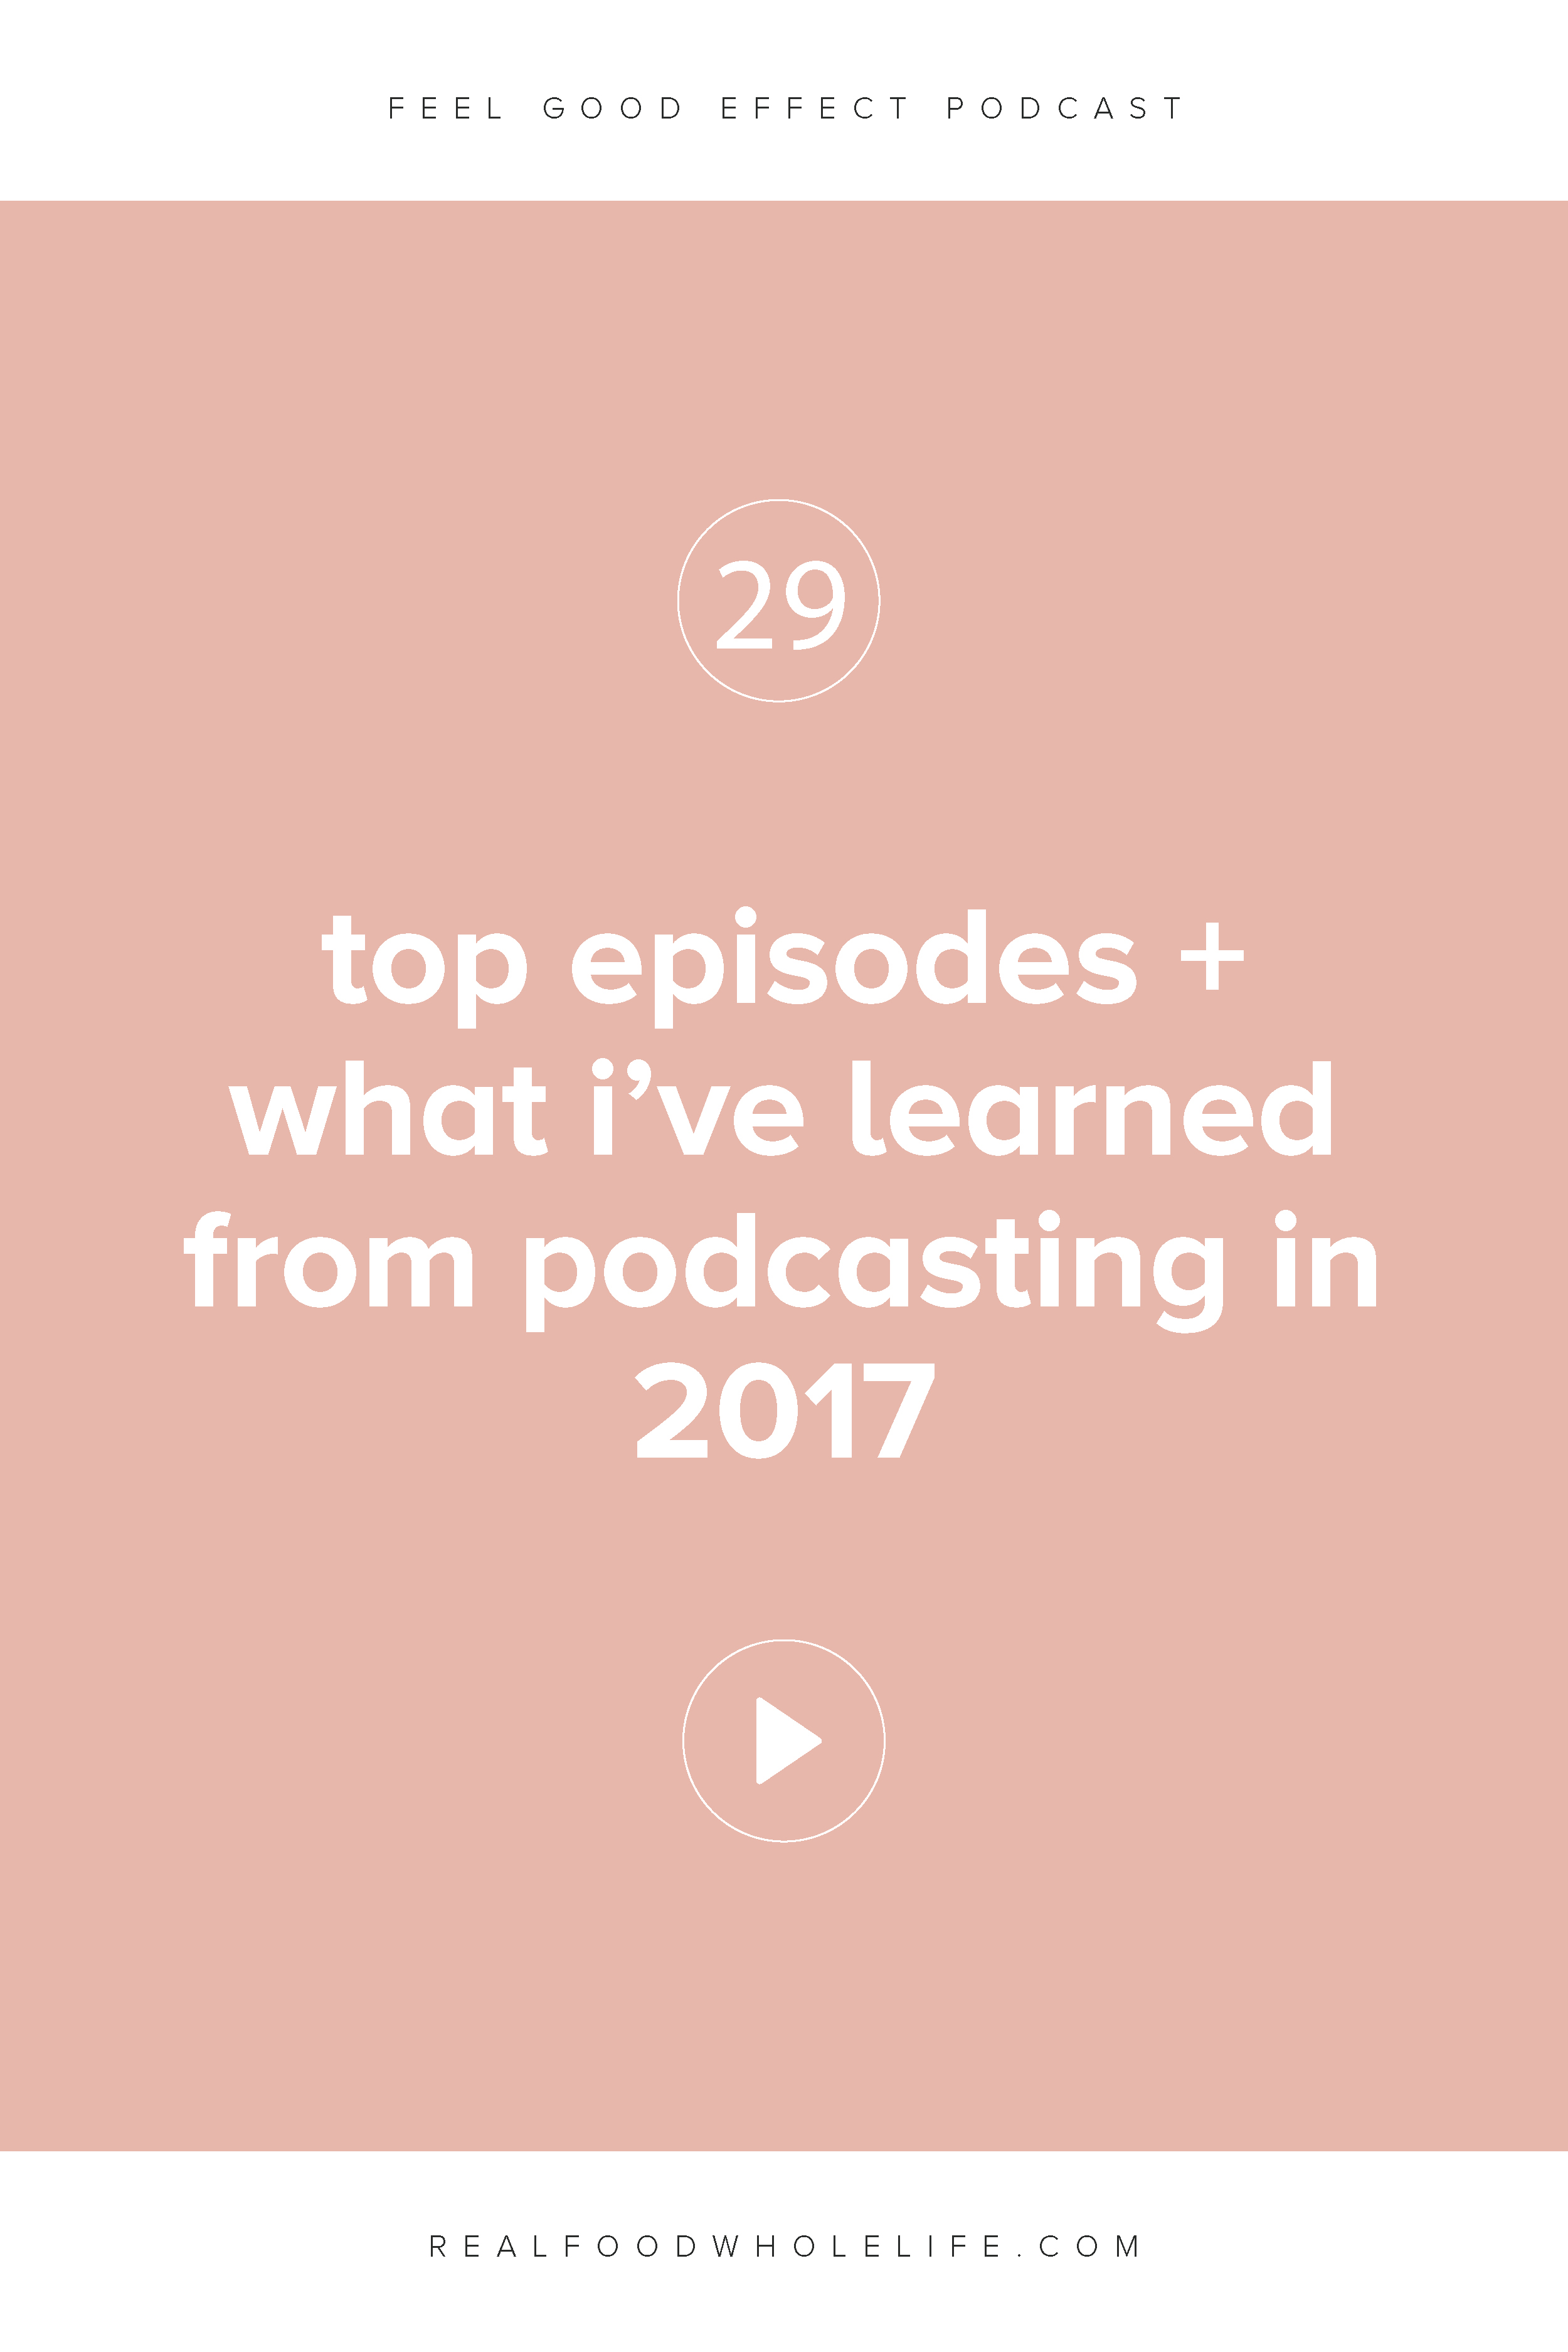 Top Episodes + What I've Learned From Podcasting in 2017